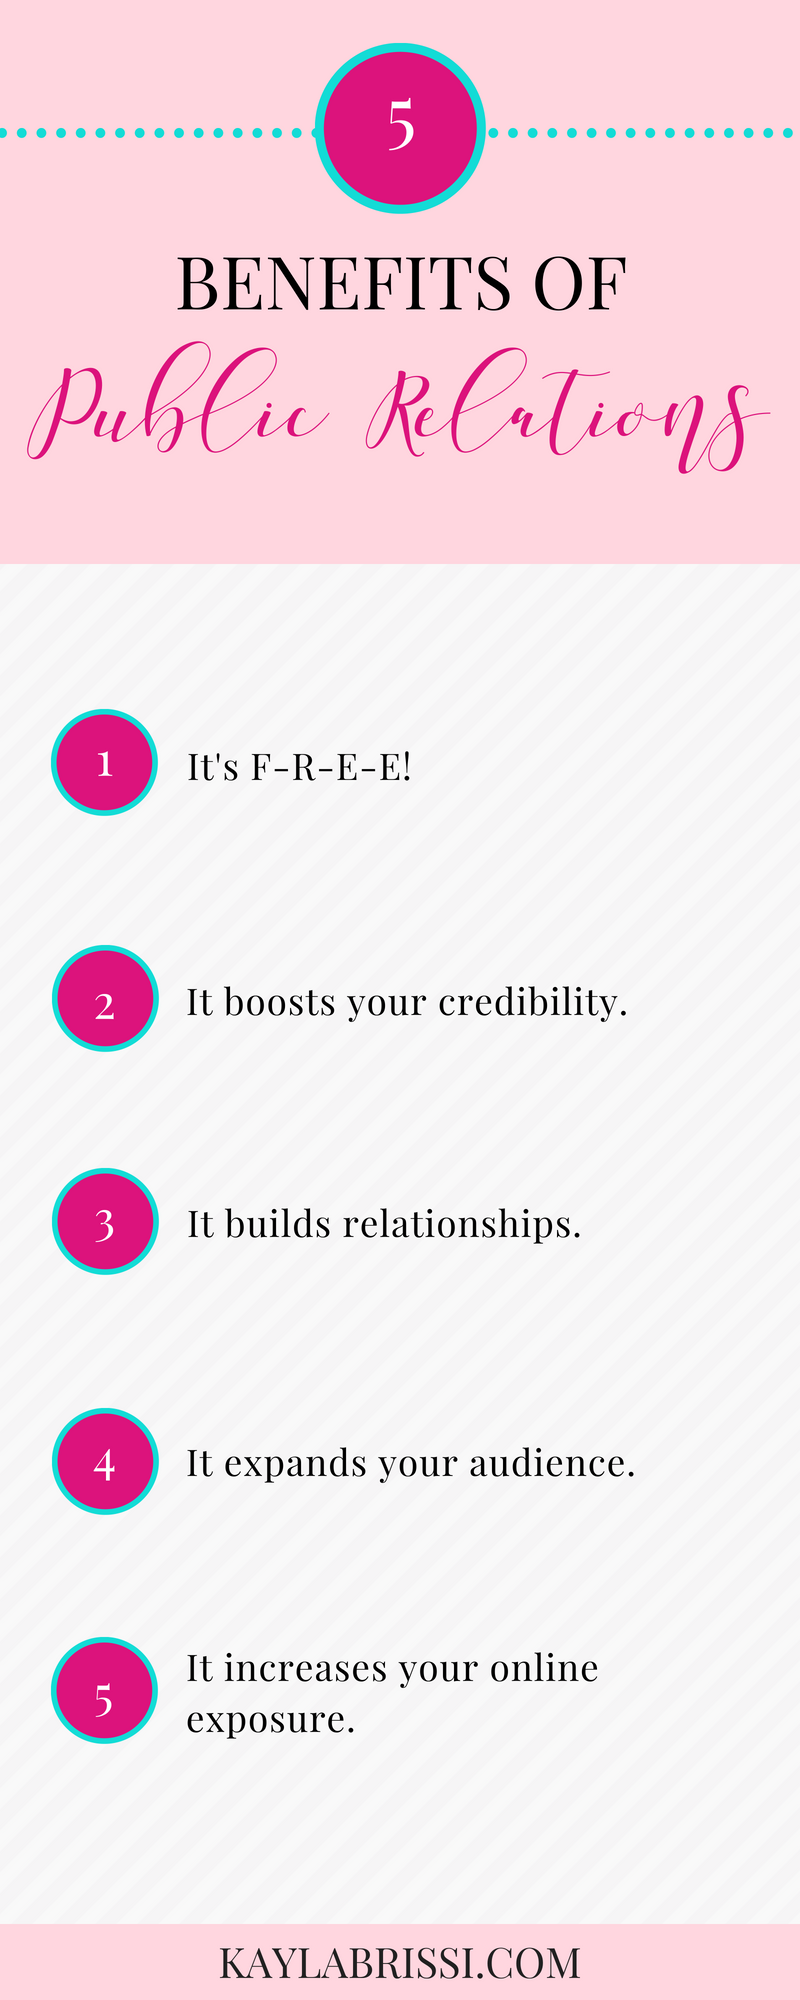 FIVE BENEFITS OF PUBLIC RELATIONS INFOGRAPHIC